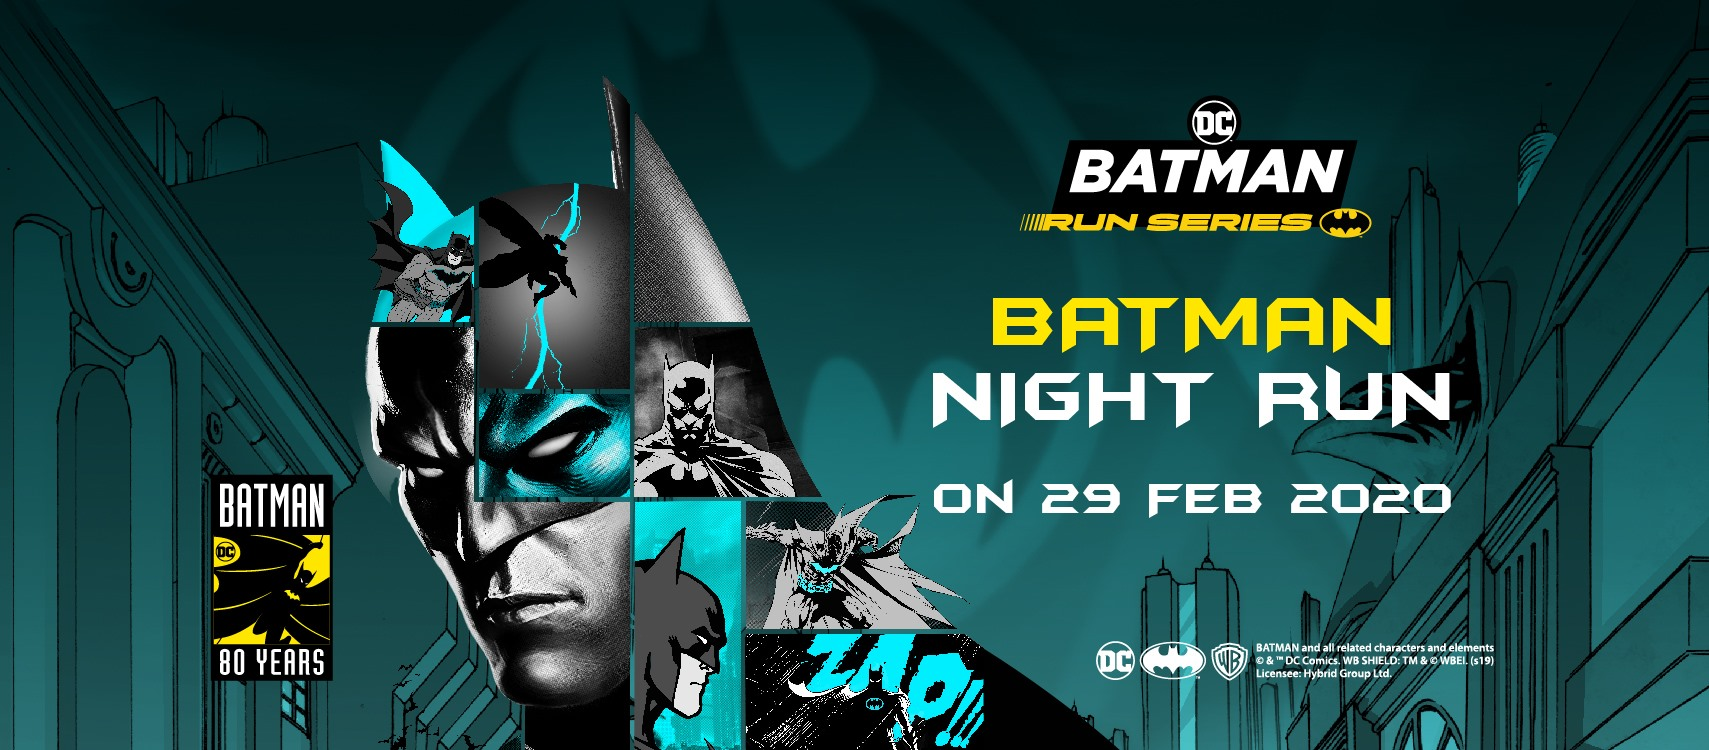 Batman Night Run Hong Kong